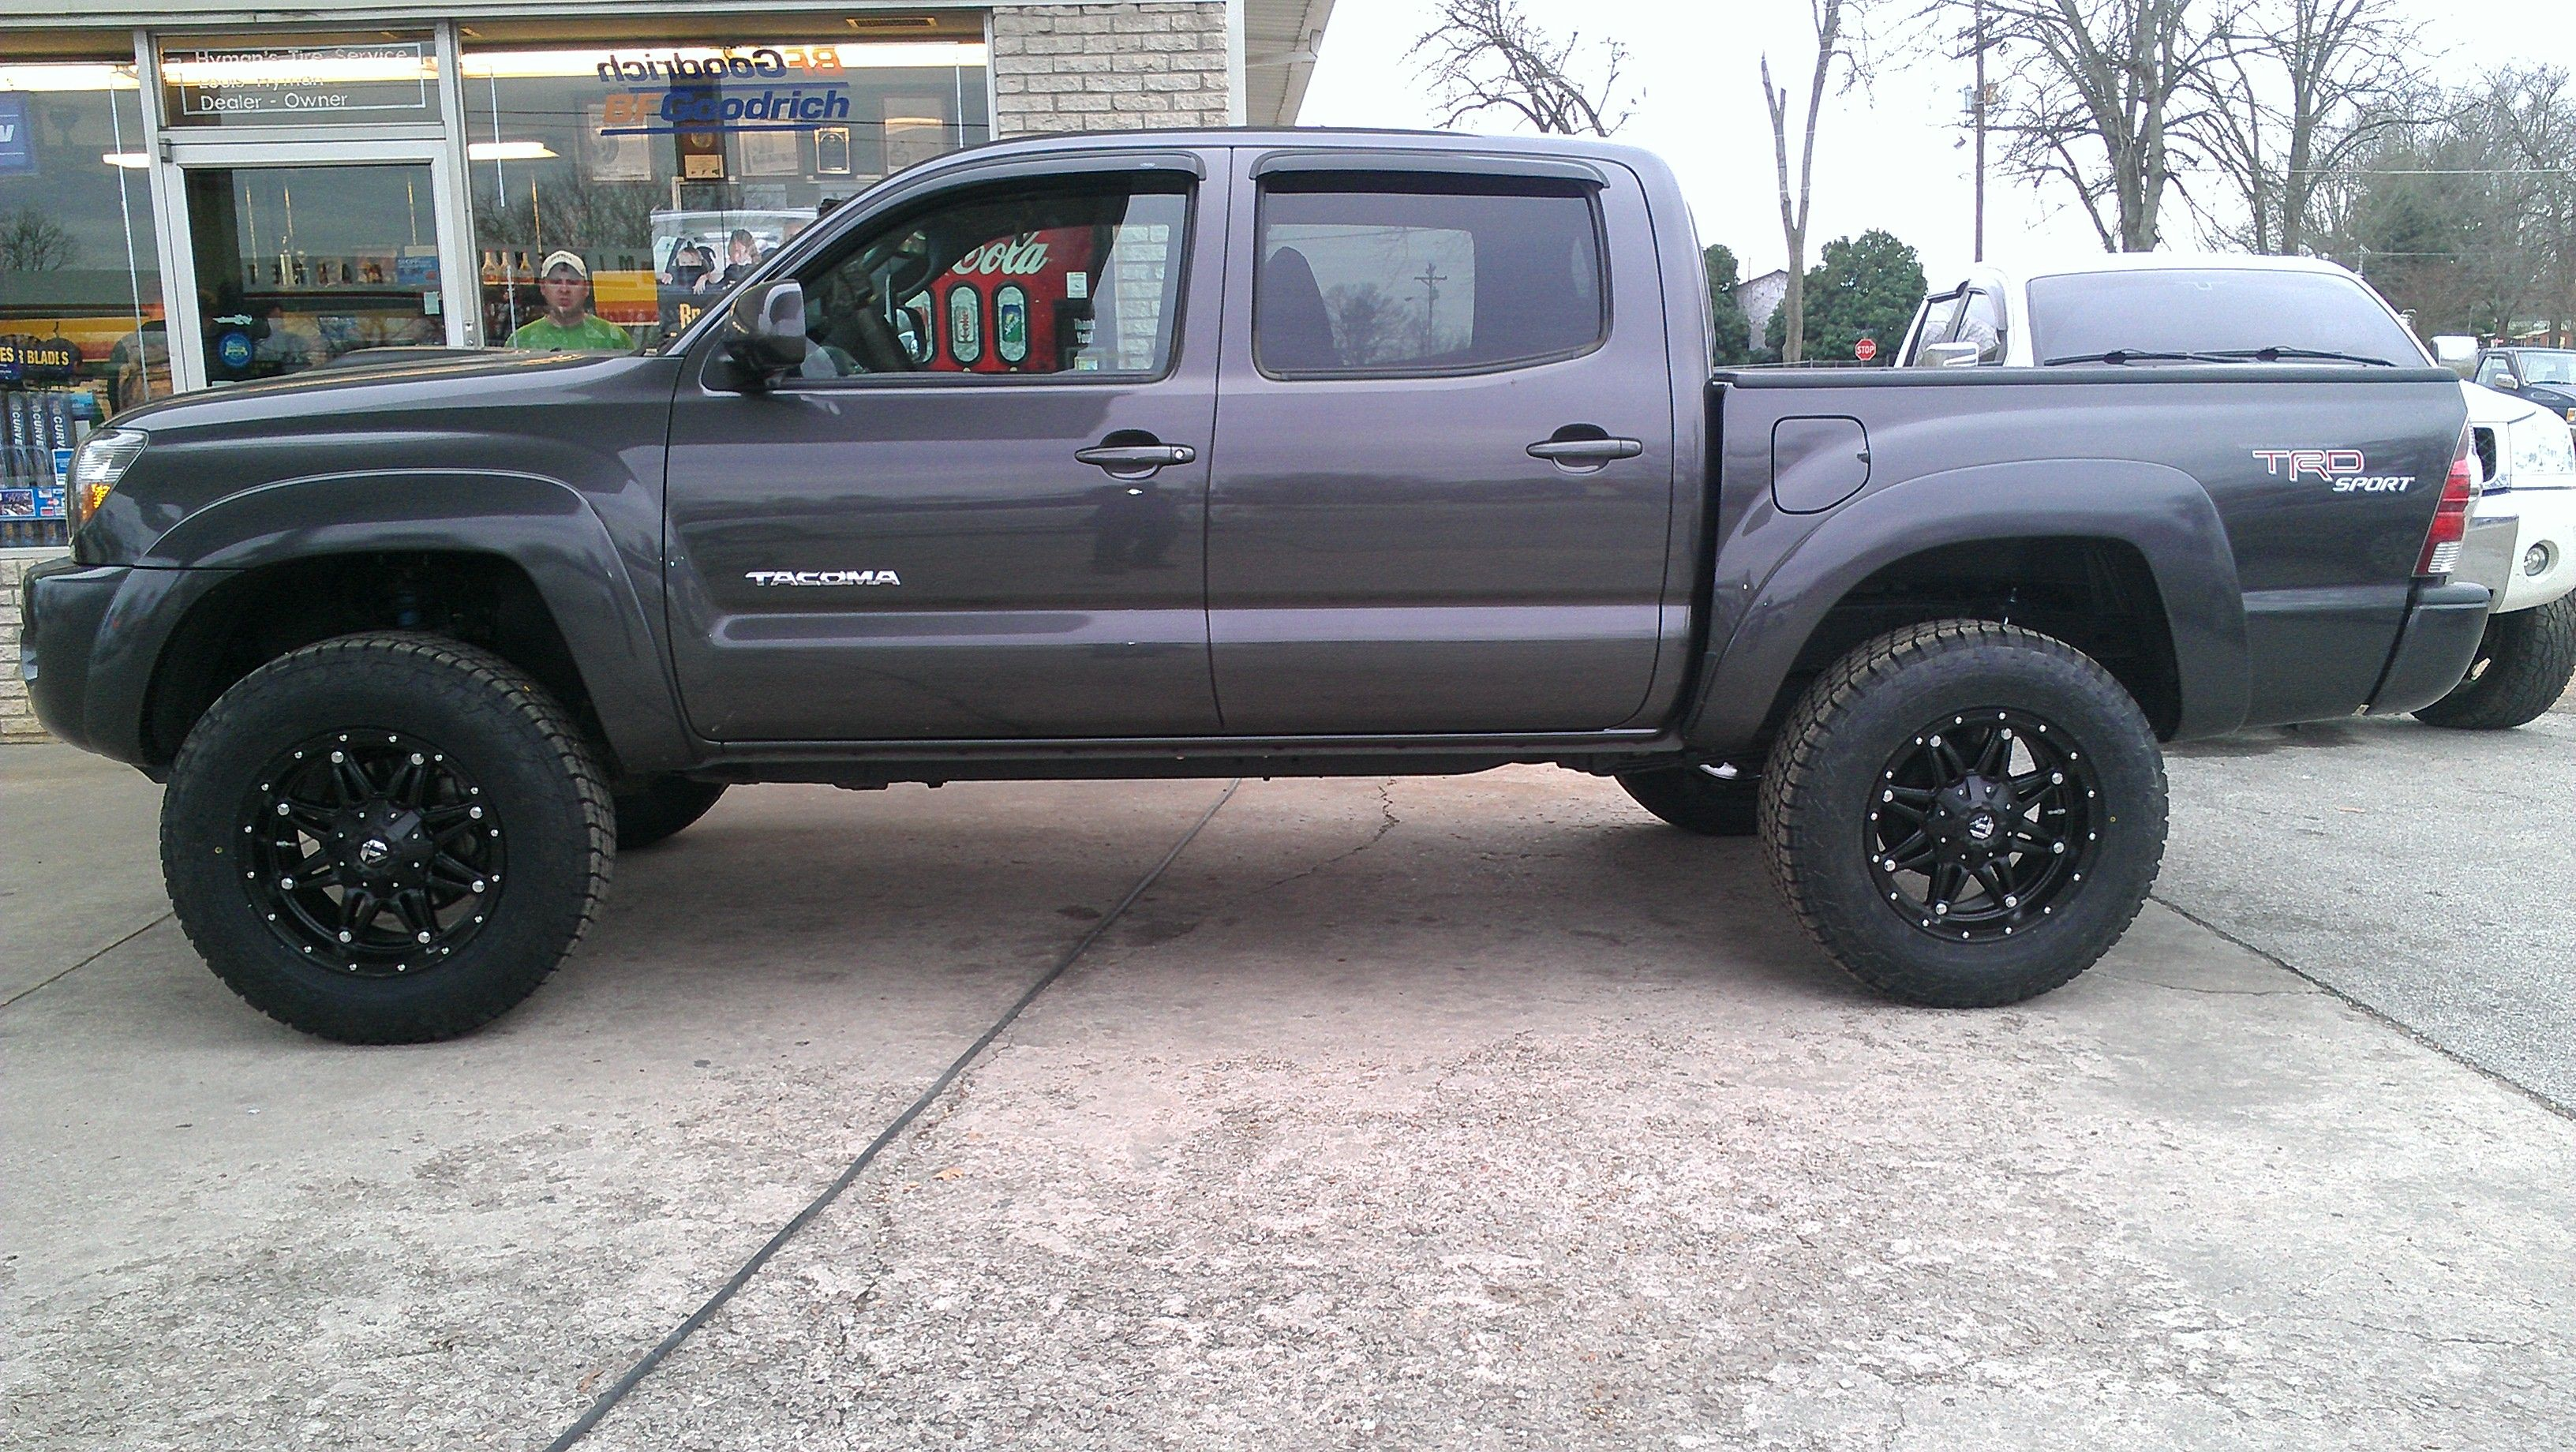 toyota tacoma 3 inch lift 33' tires - Google Search